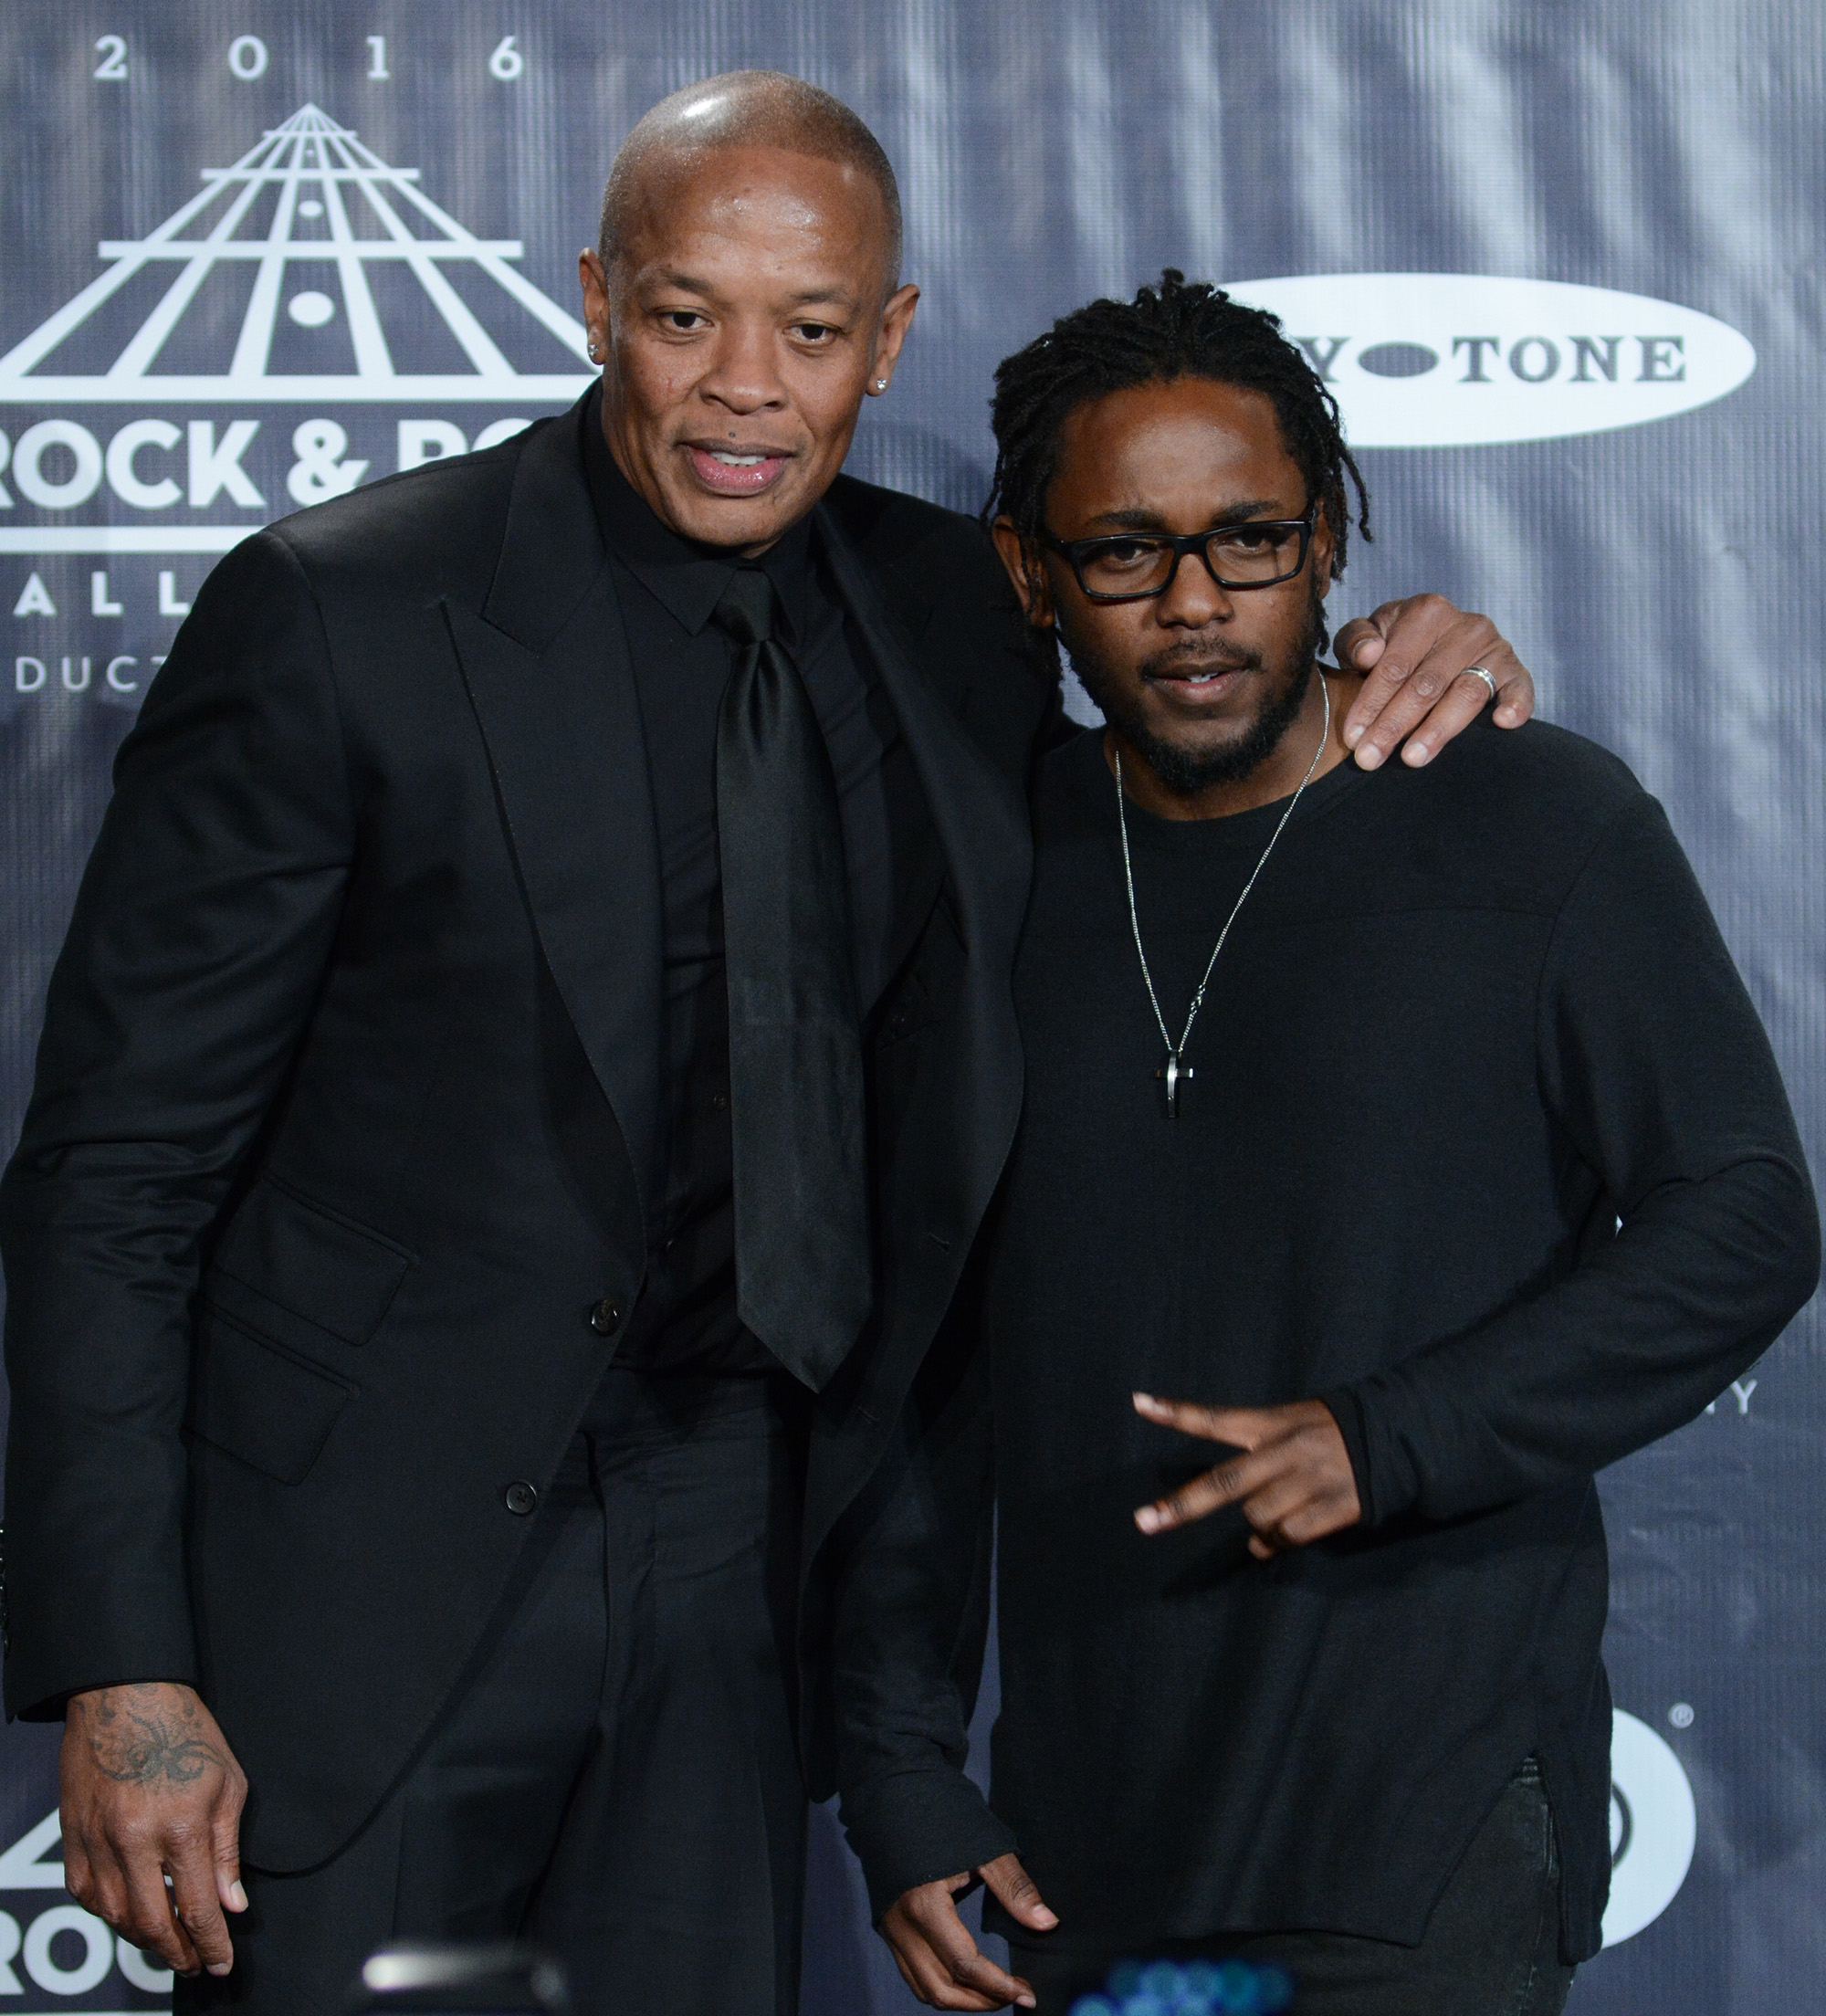 31st Annual Rock And Roll Hall Of Fame Induction Ceremony - Press Room                                    Featuring: Dr. Dre, Kendrick Lamar                  Where: New York, New York, United States                  When: 08 Apr 2016                  Credit: Ivan Nikolov/WENN.com